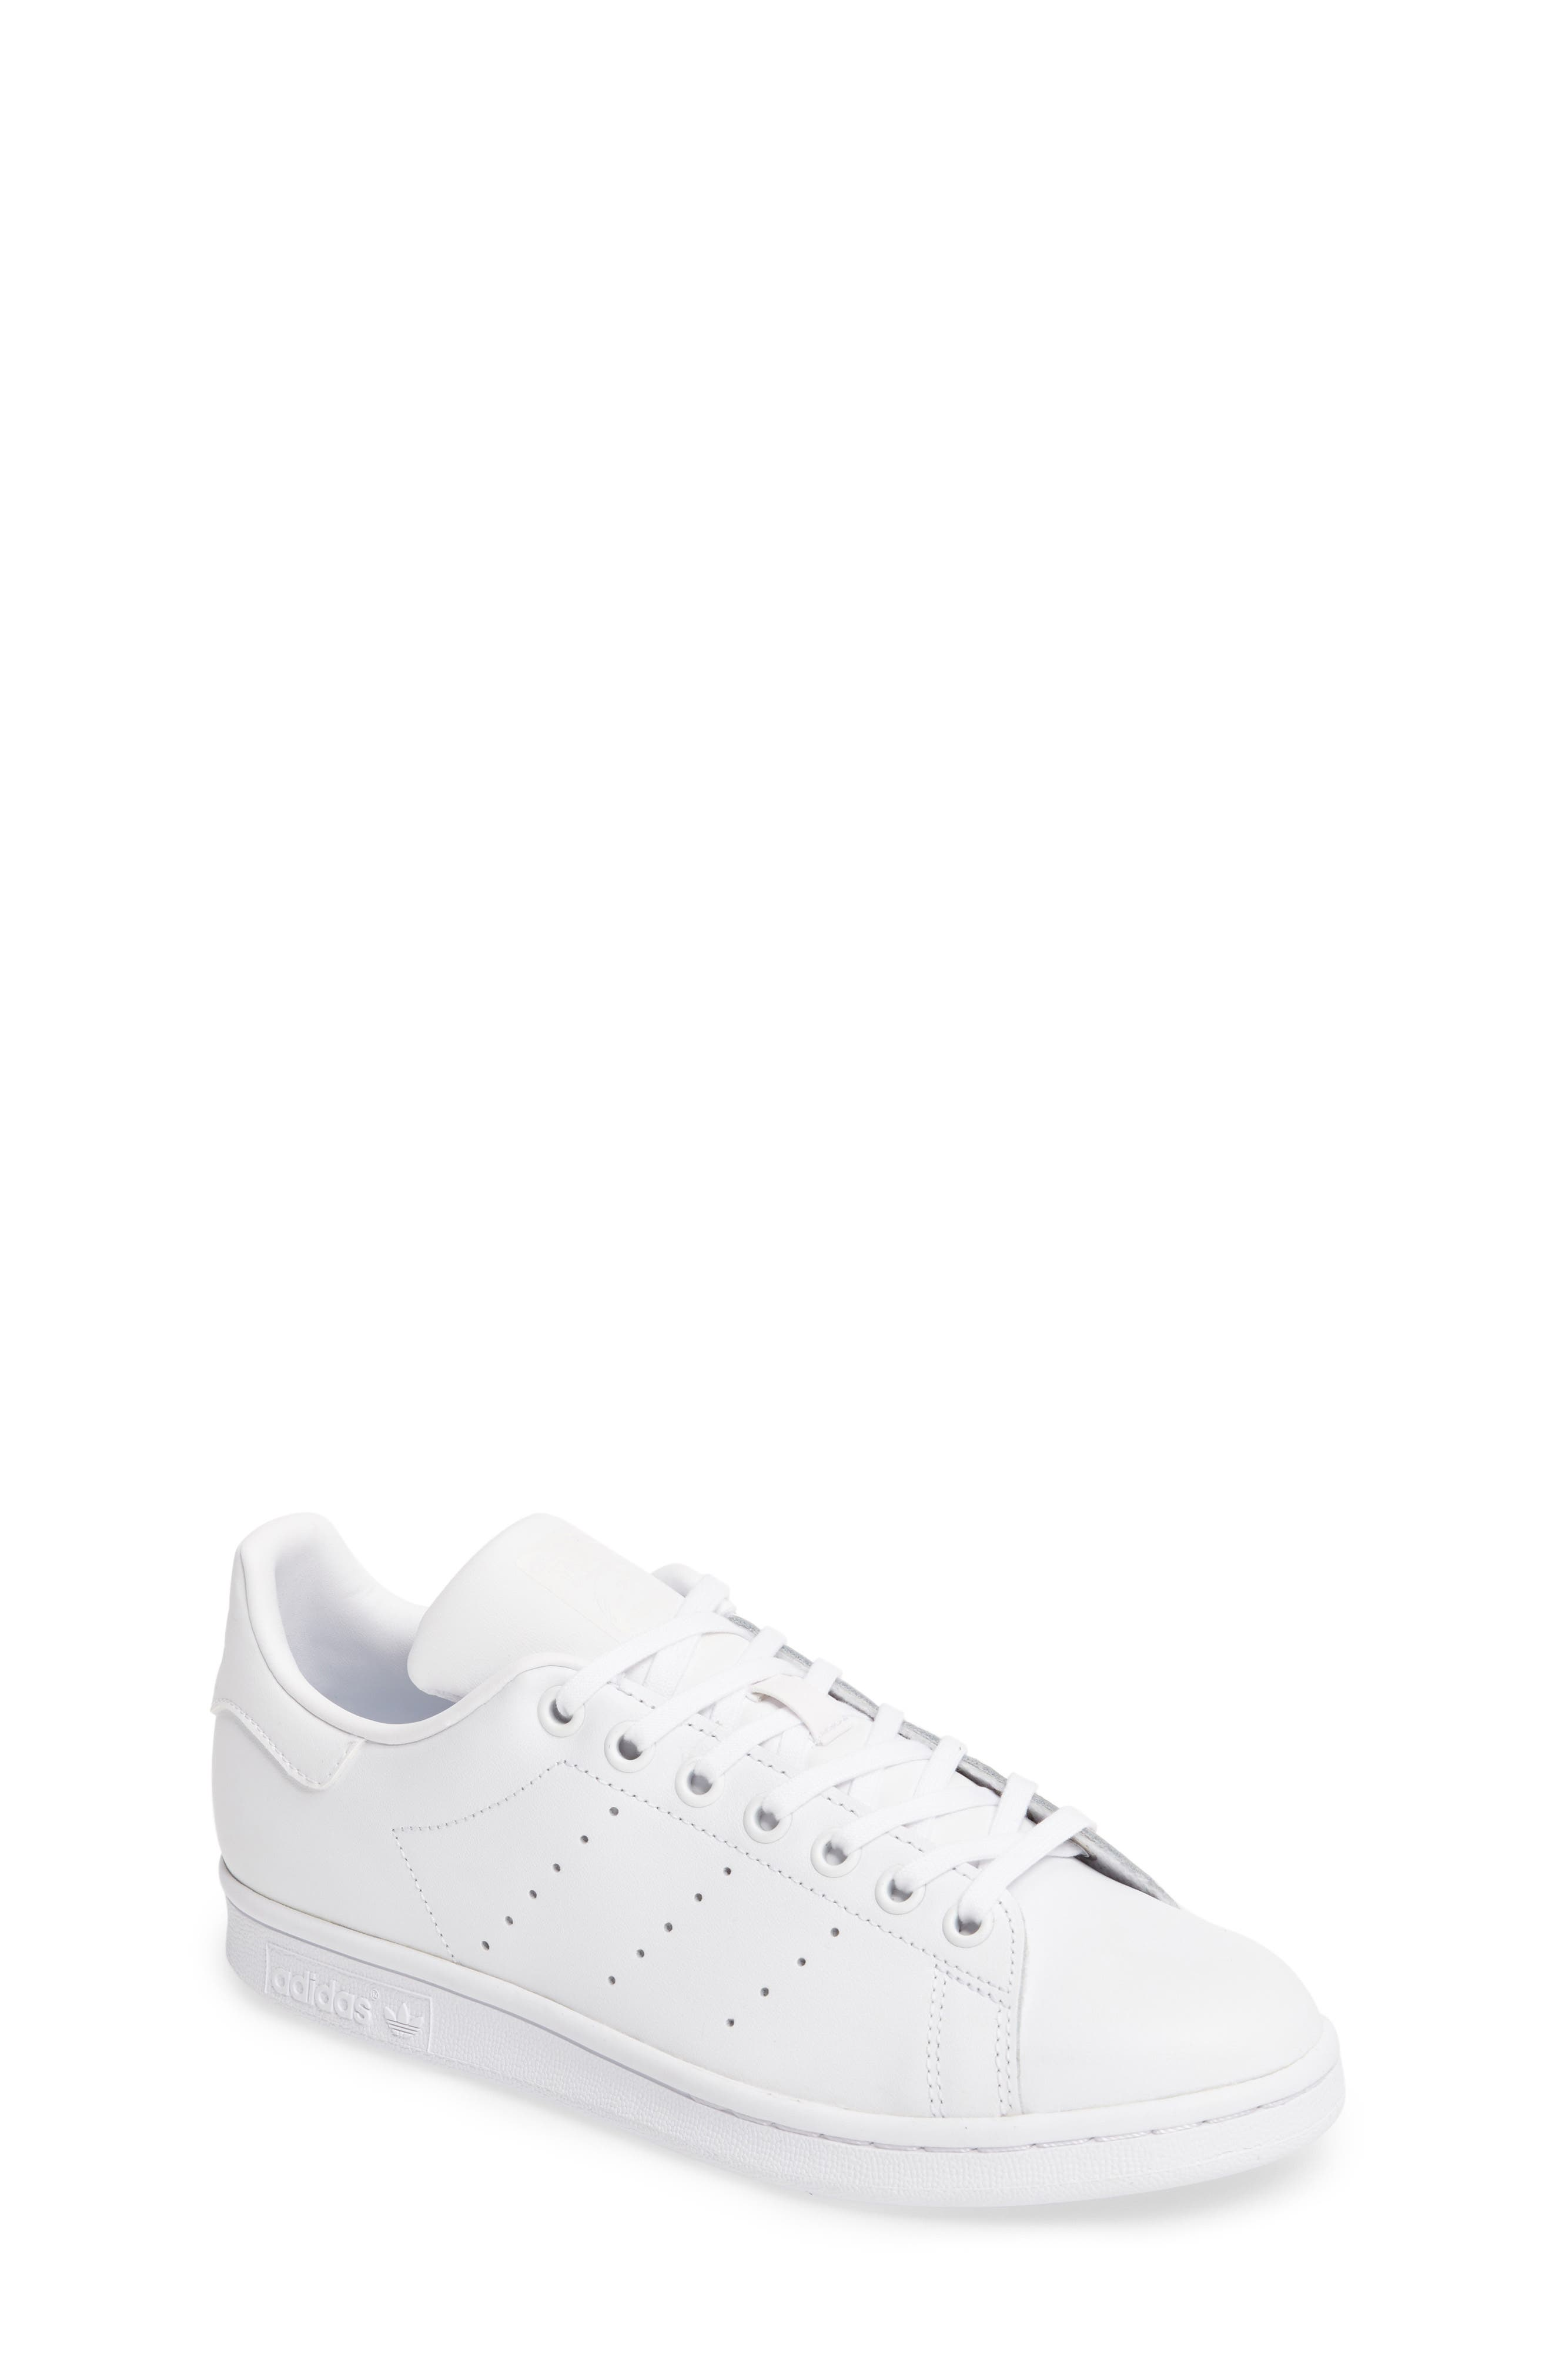 Main Image - adidas \u0027Stan Smith\u0027 Leather Sneaker (Big Kid)